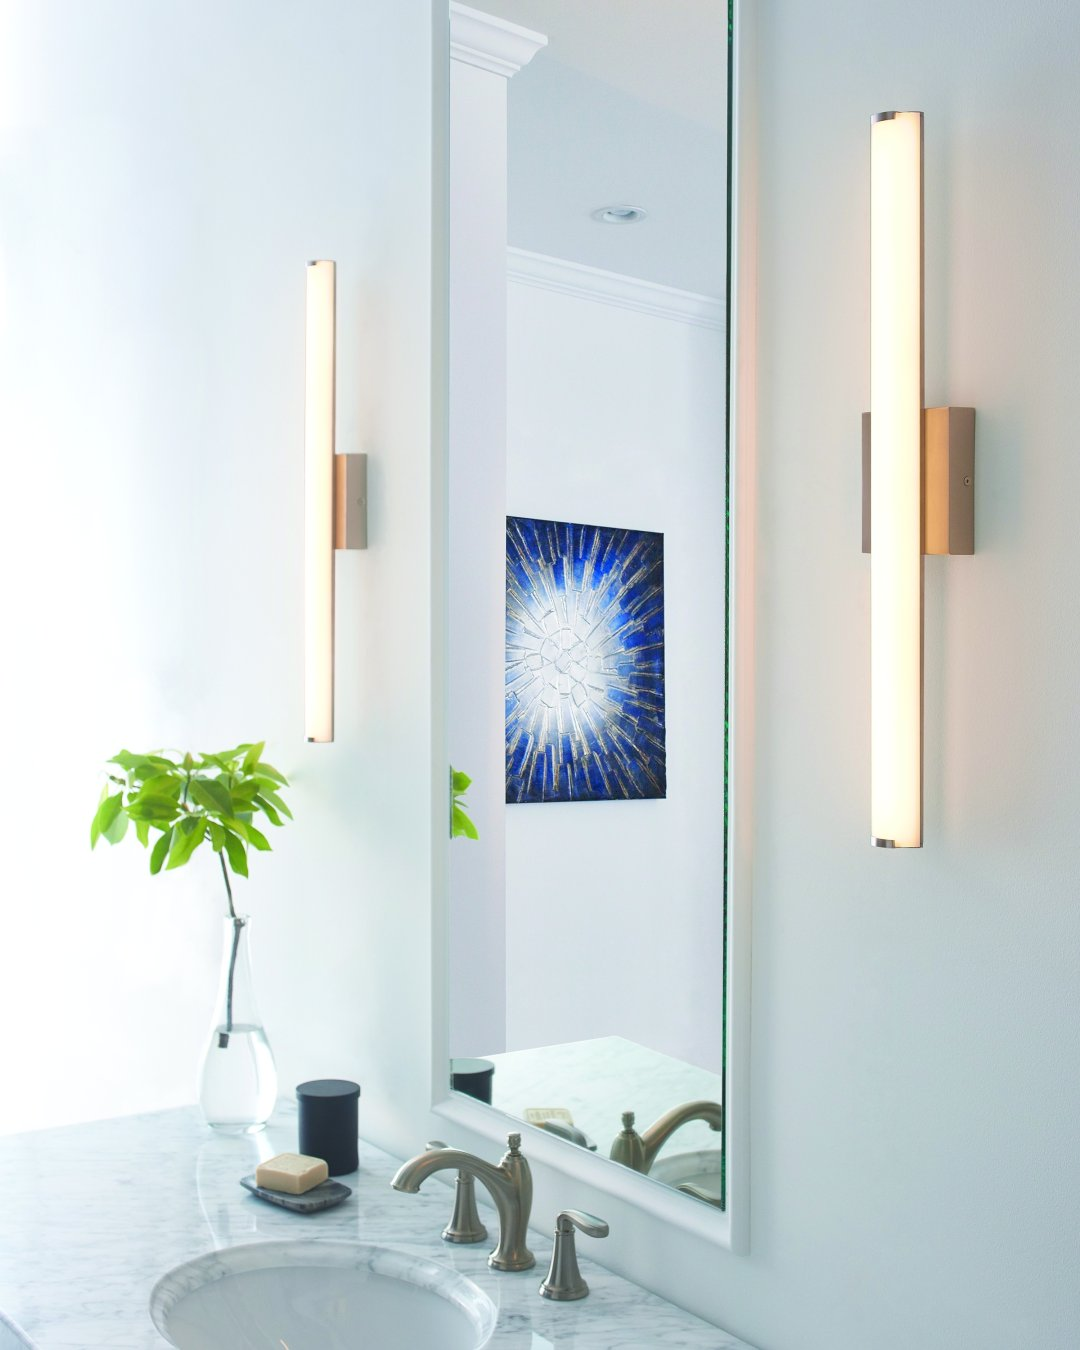 Bathroom lighting ideas 3 tips for better bath lighting at - Best lighting options for your bathroom ...